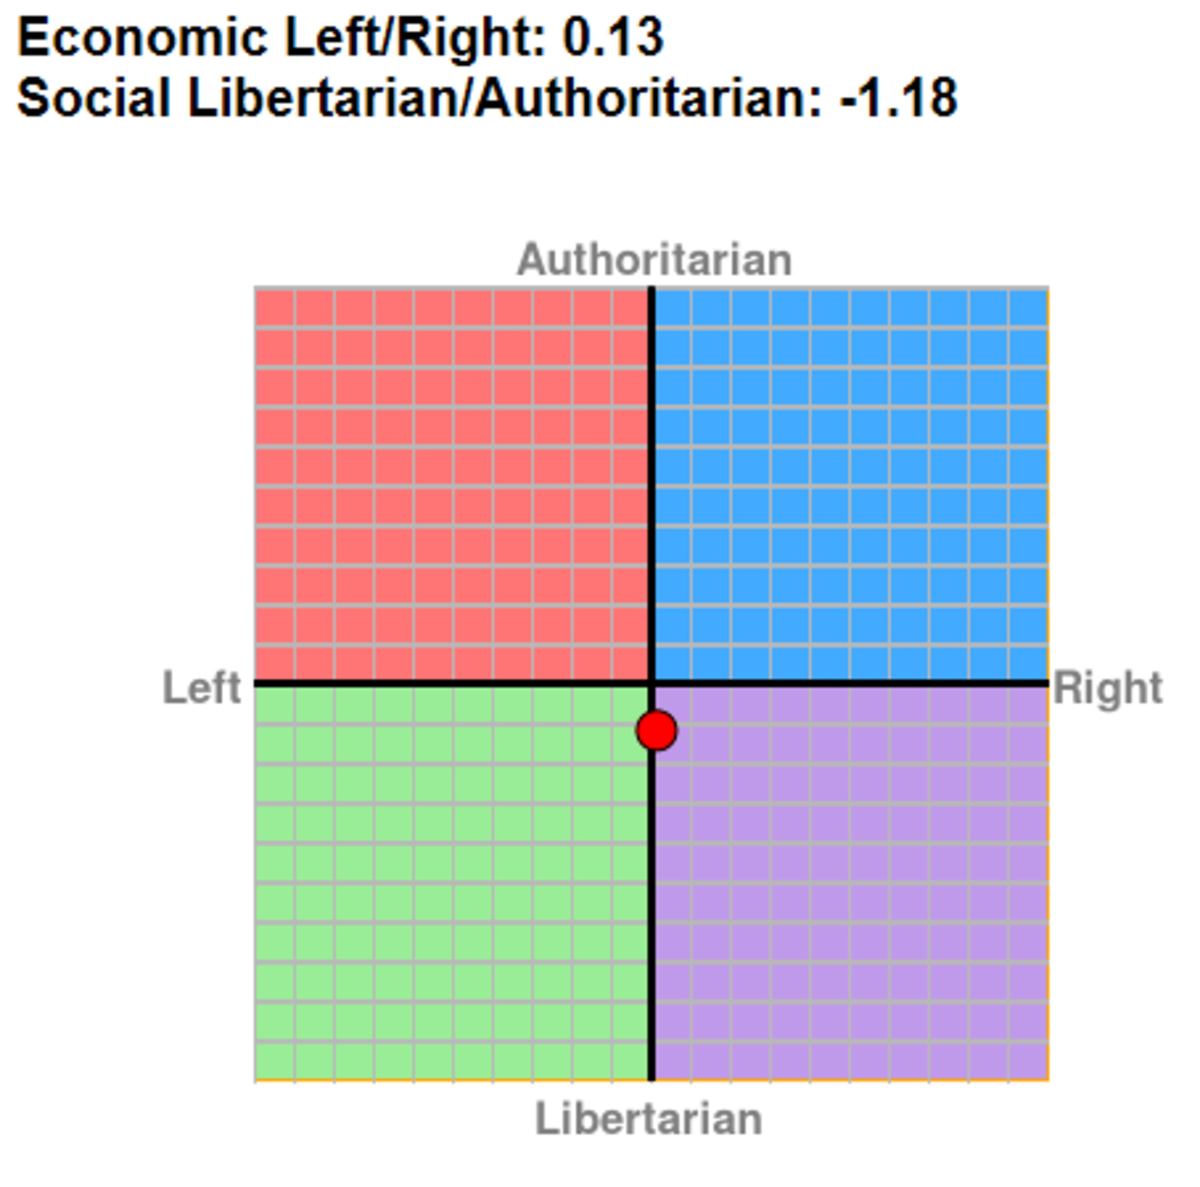 I've finally made it guys. After taking the test for a second time, many months in between I've moved from authoritarian left to libertarian right, though alway